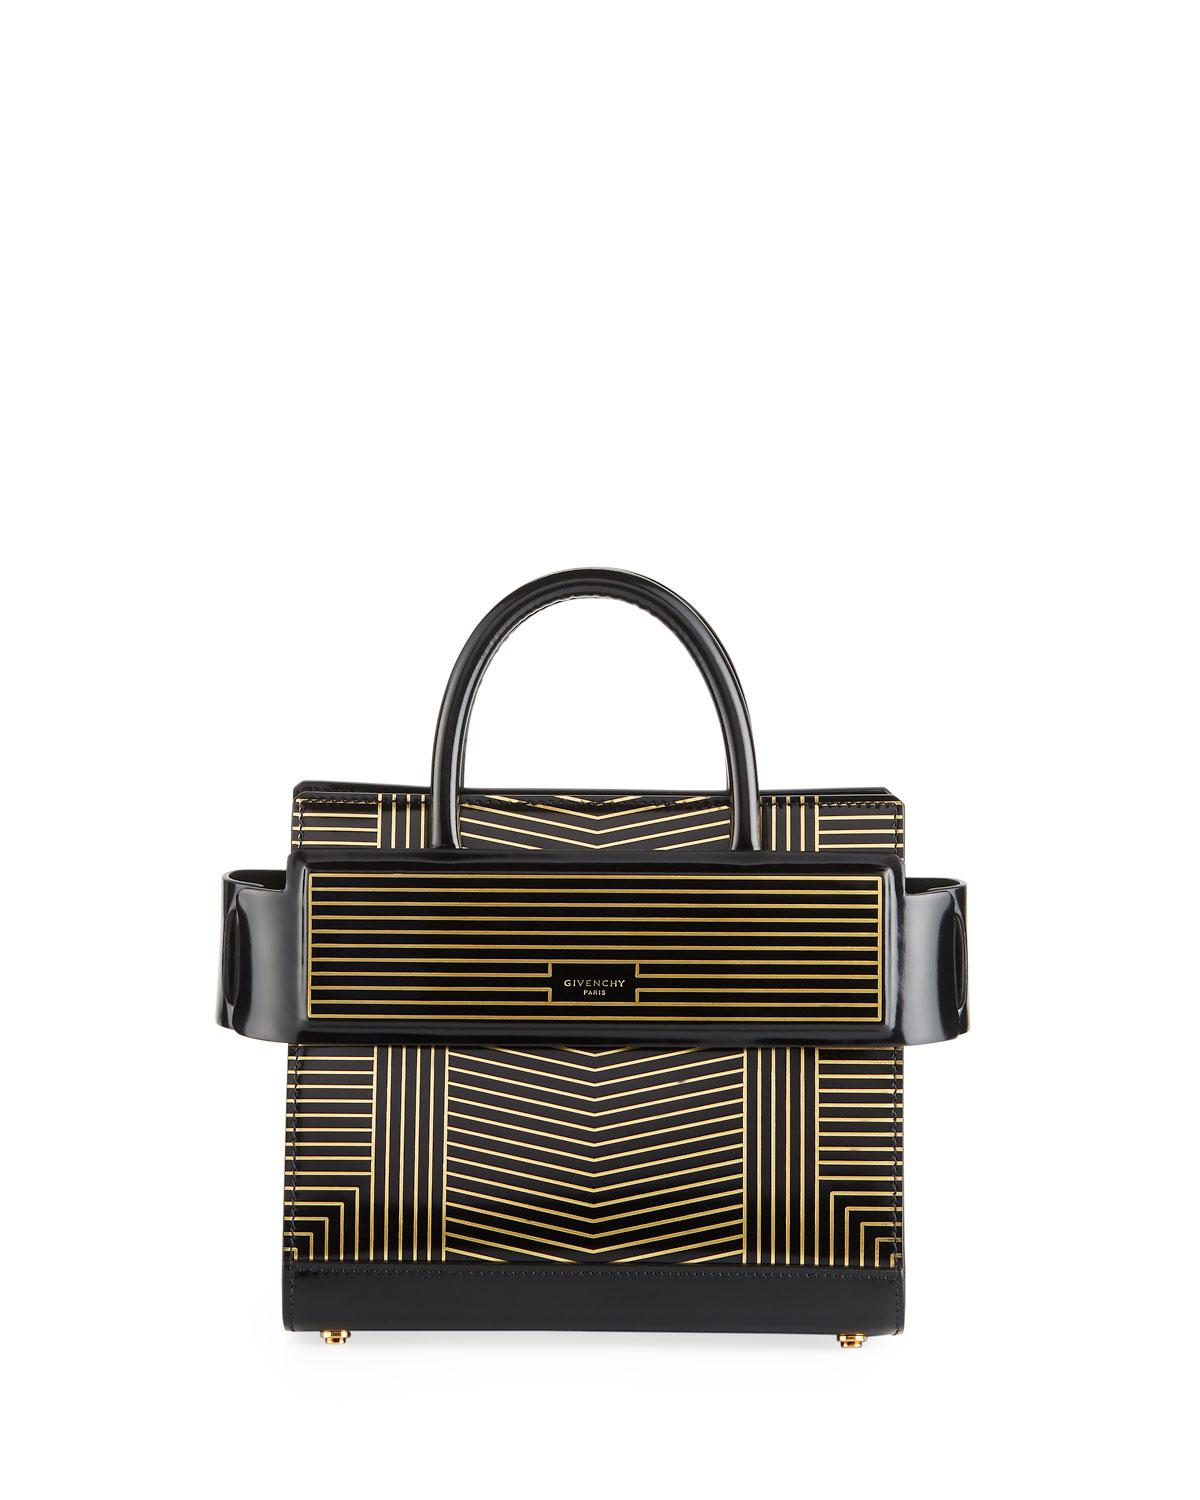 6ccdaa56dc3 Givenchy Horizon Striped Leather Mini Bag in Black - Lyst